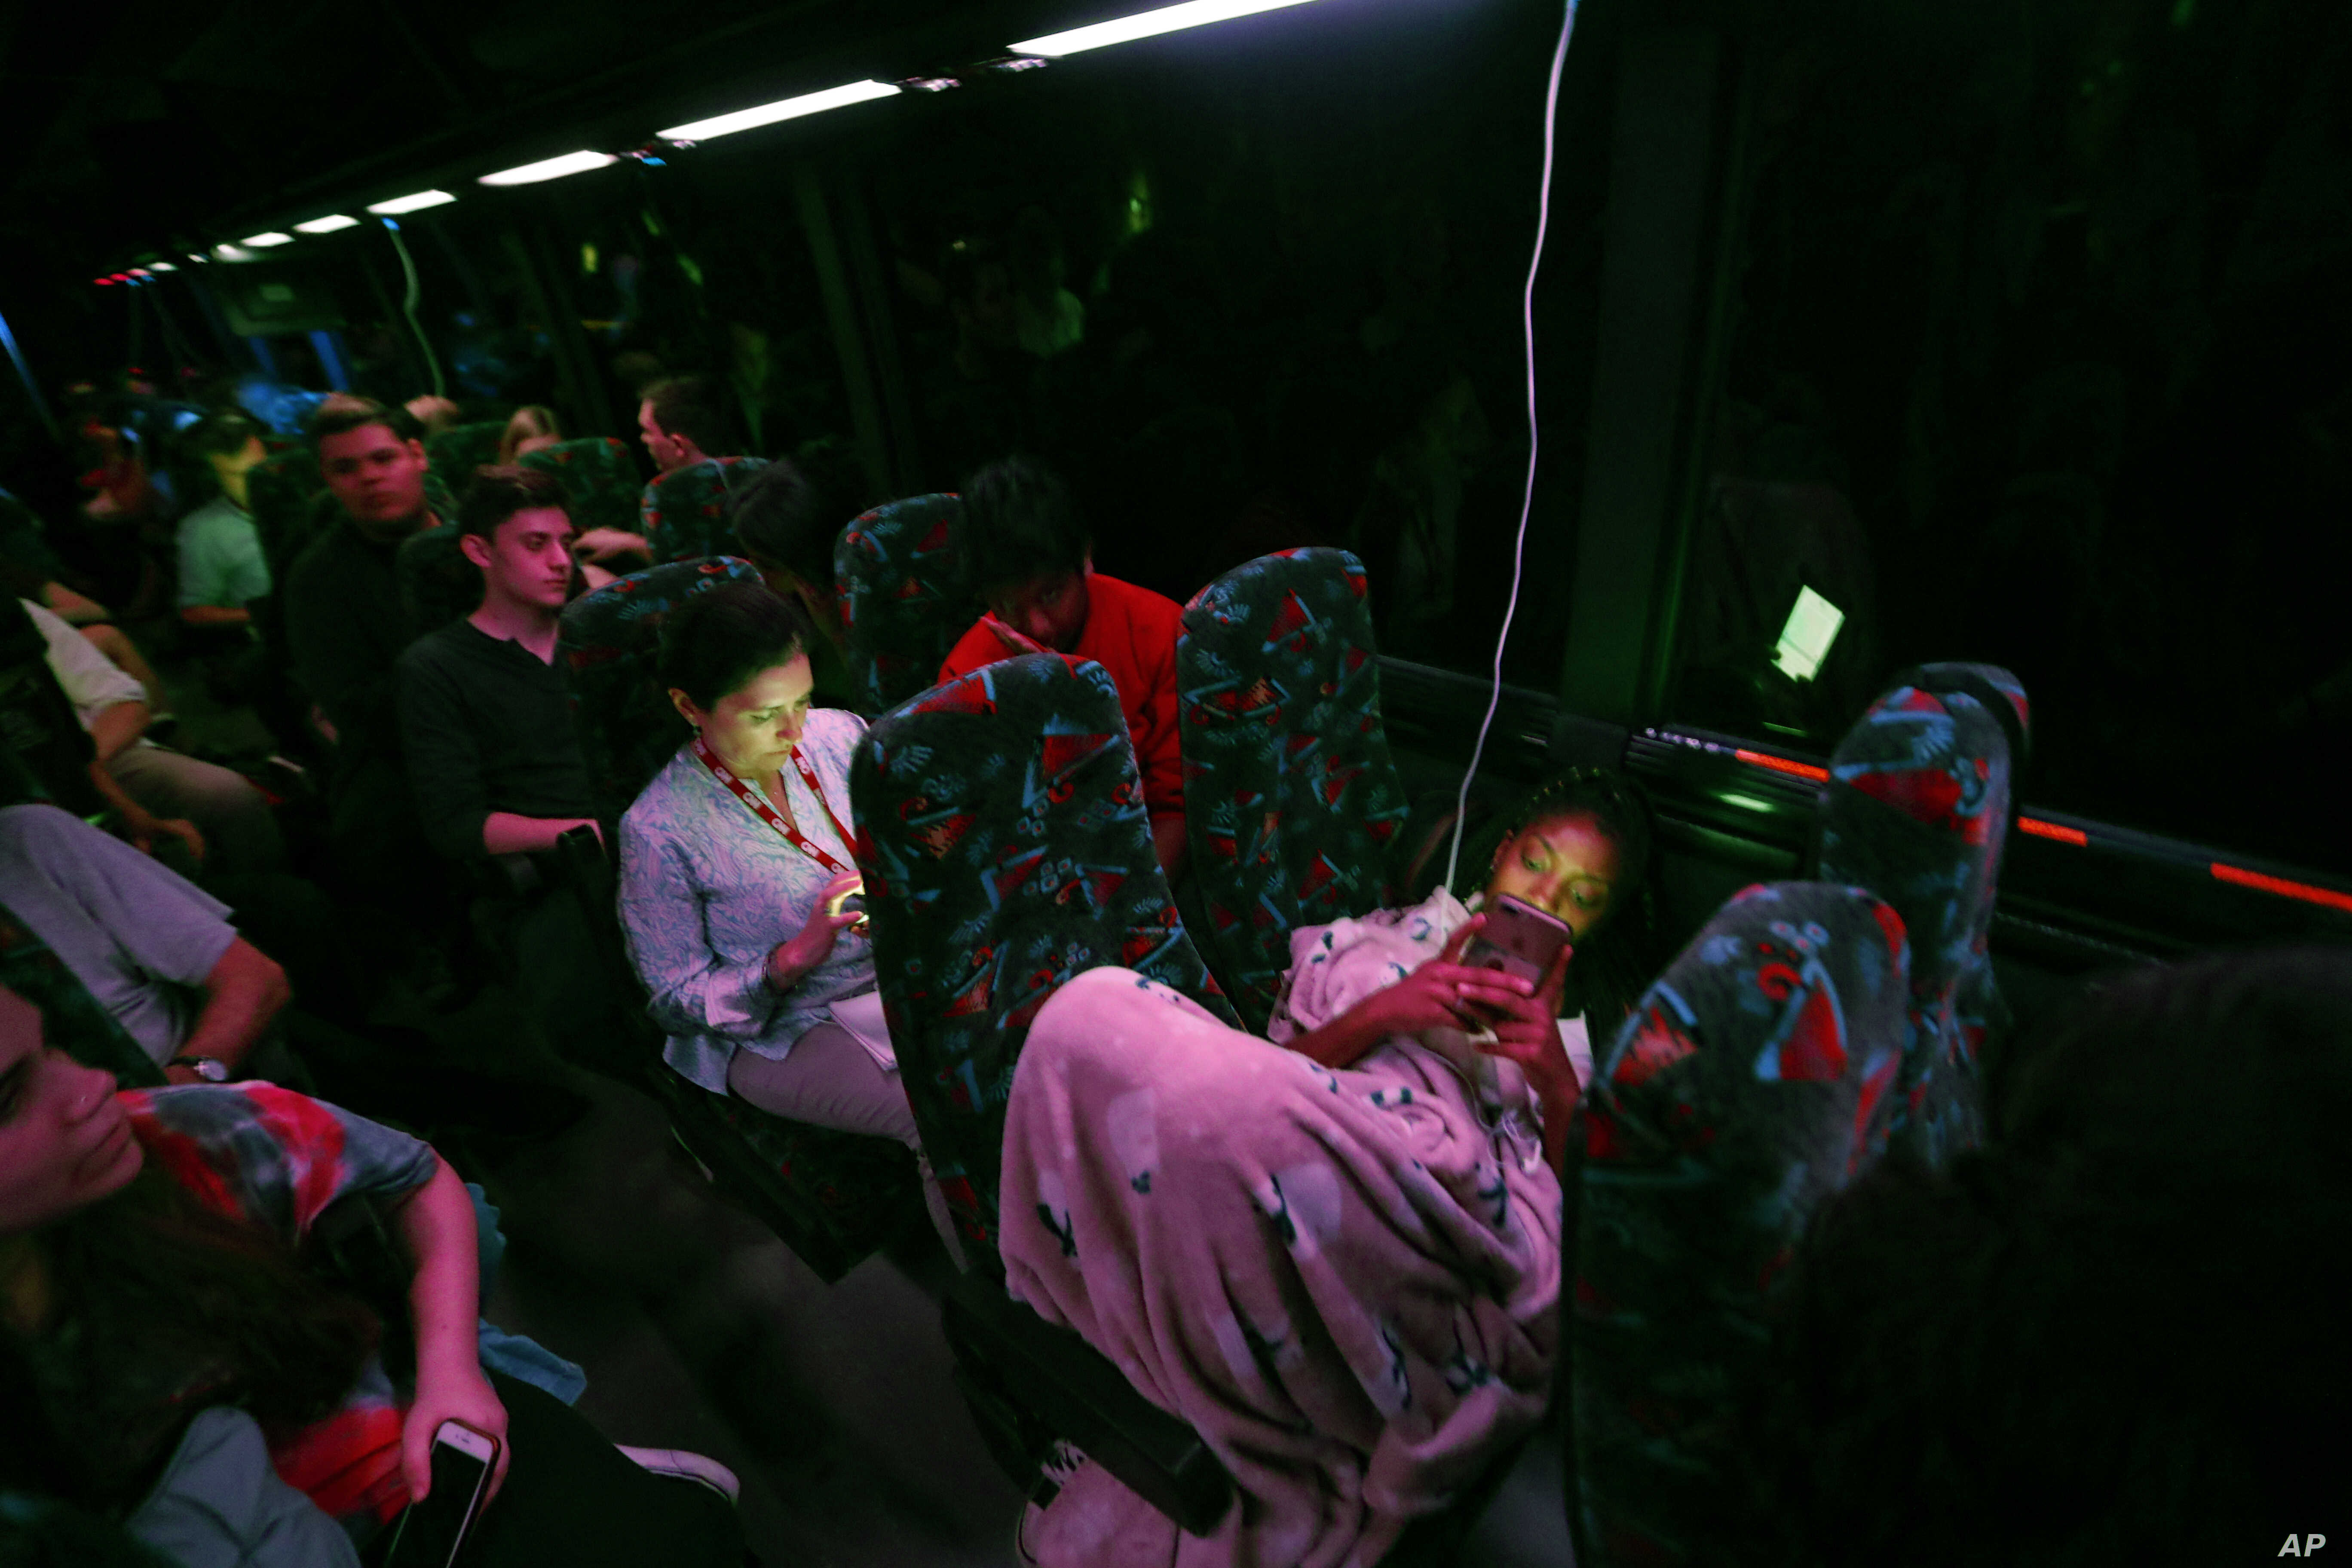 Student survivors from Marjory Stoneman Douglas High School, where 17 students and faculty were killed in a shooting last Wednesday, ride during the night aboard their bus between Parkland, Fla., and Tallahassee, Fla., Feb. 20, 2018, to rally outside...